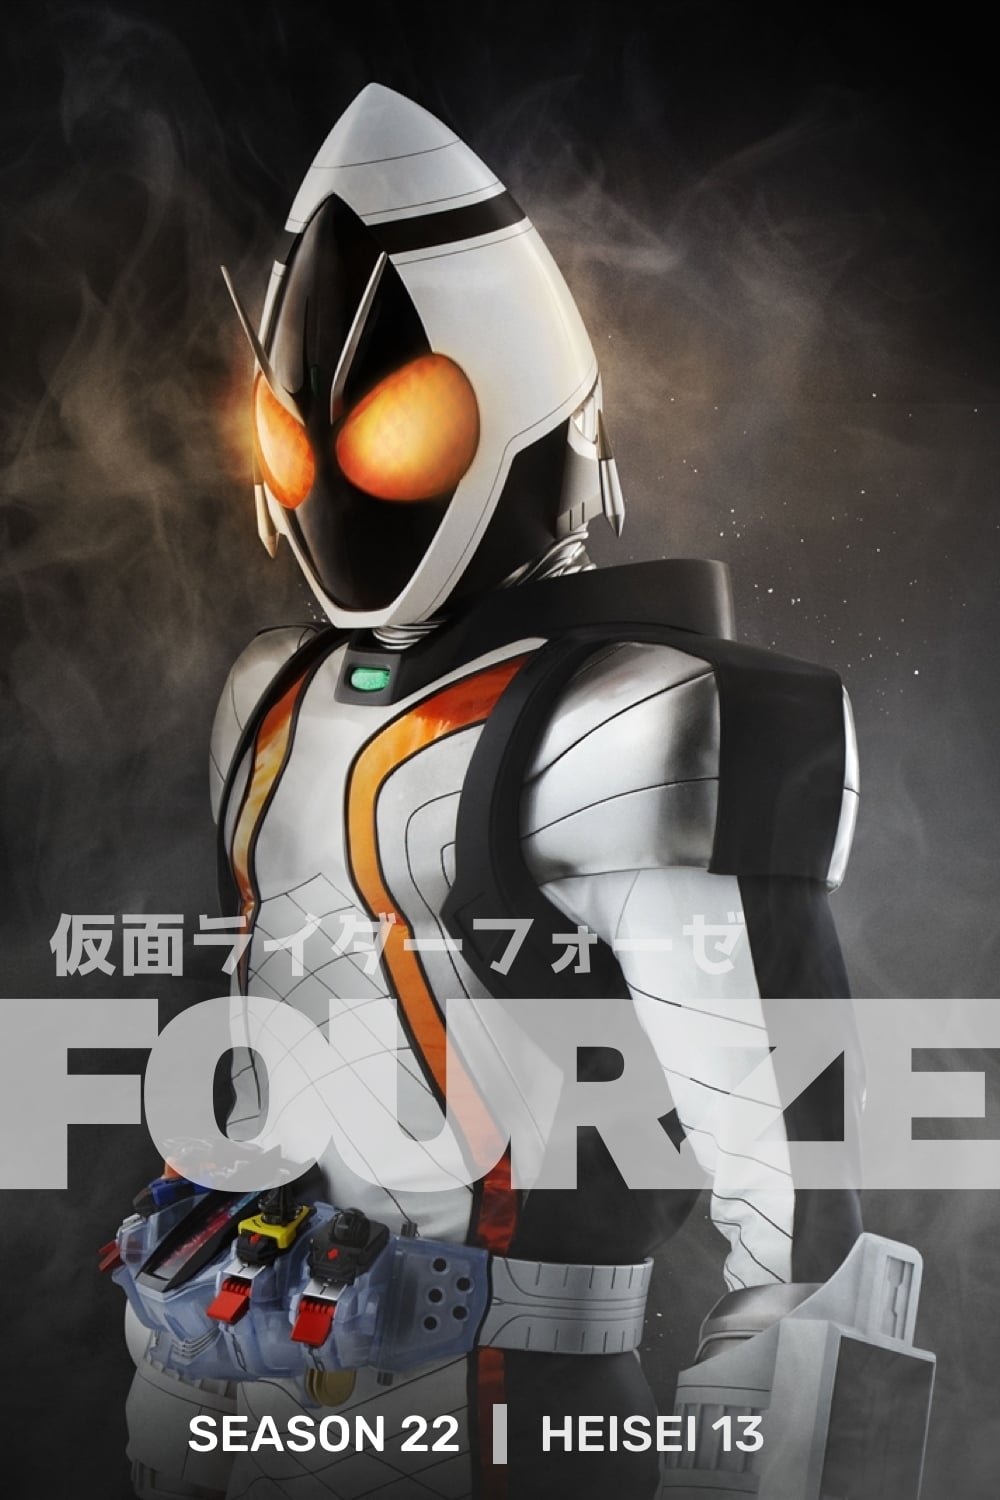 Kamen Rider - Season 21 Episode 42 : Ice, Greeed Form, Broken Wings Season 22